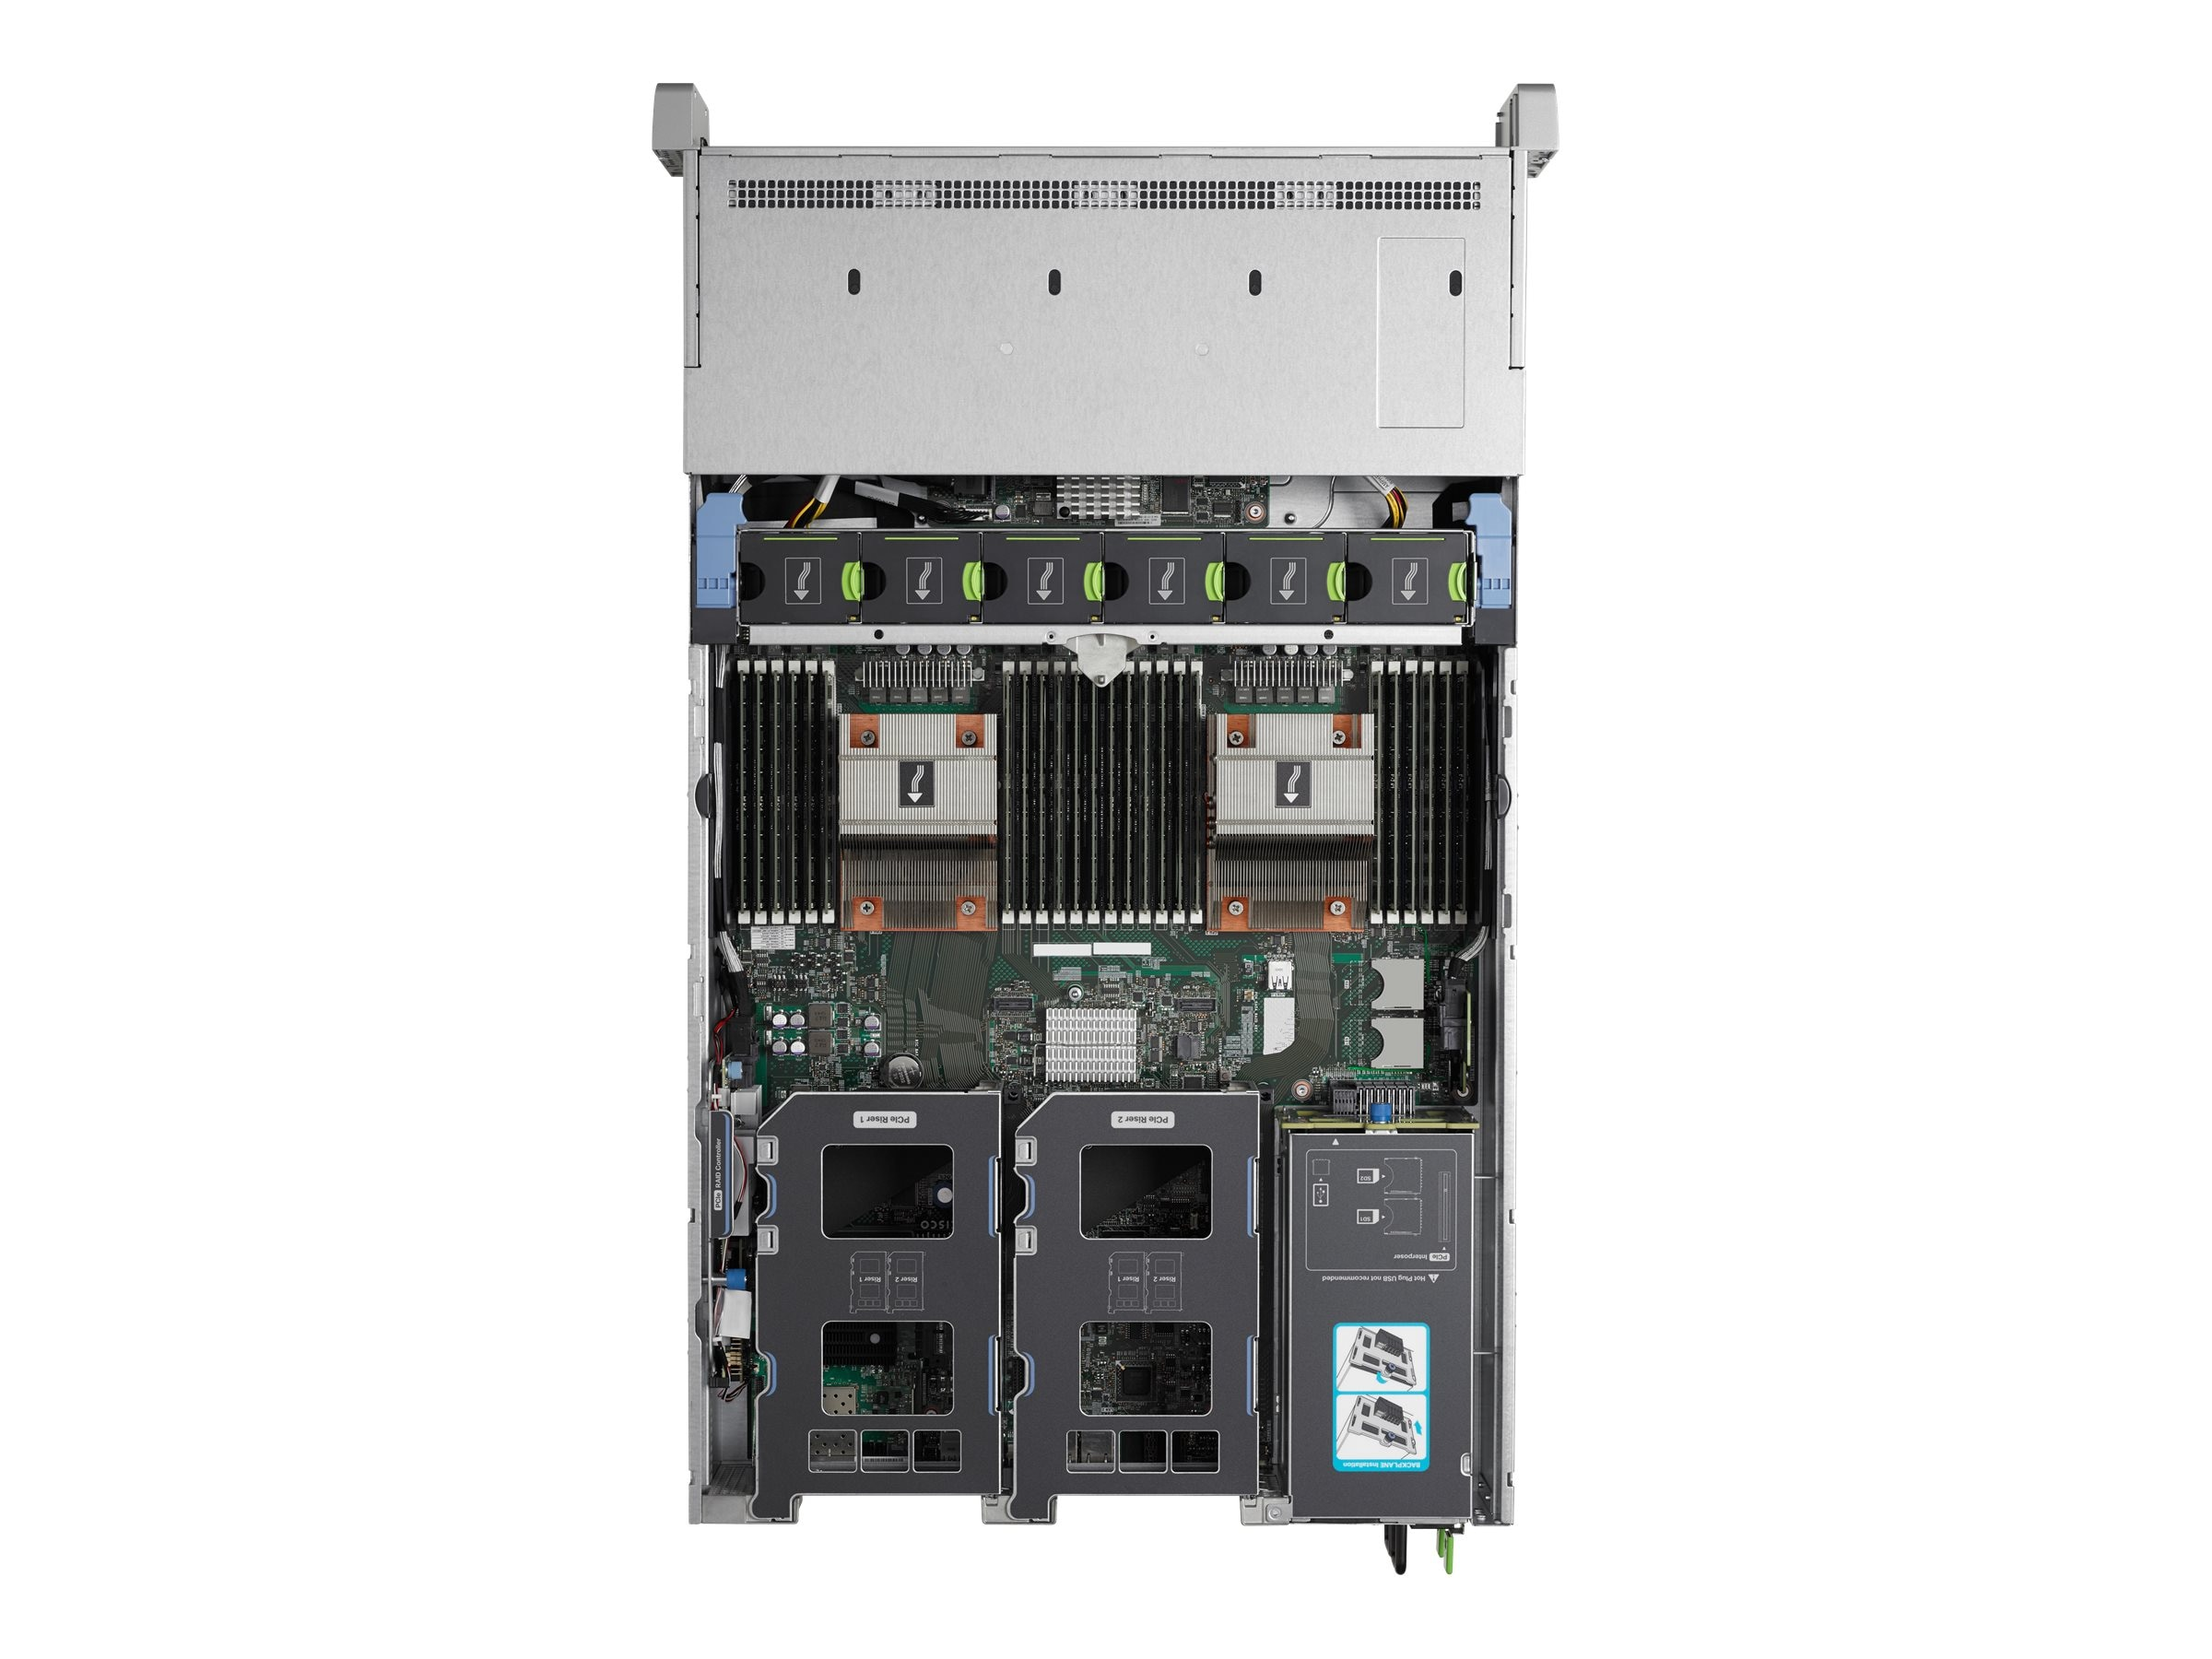 Cisco UCS C240 M4S (2x)E5-2650 v4 2x32GB MRAID 2x1200W 32GB SD Rails, UCS-SPR-C240M4-BA2